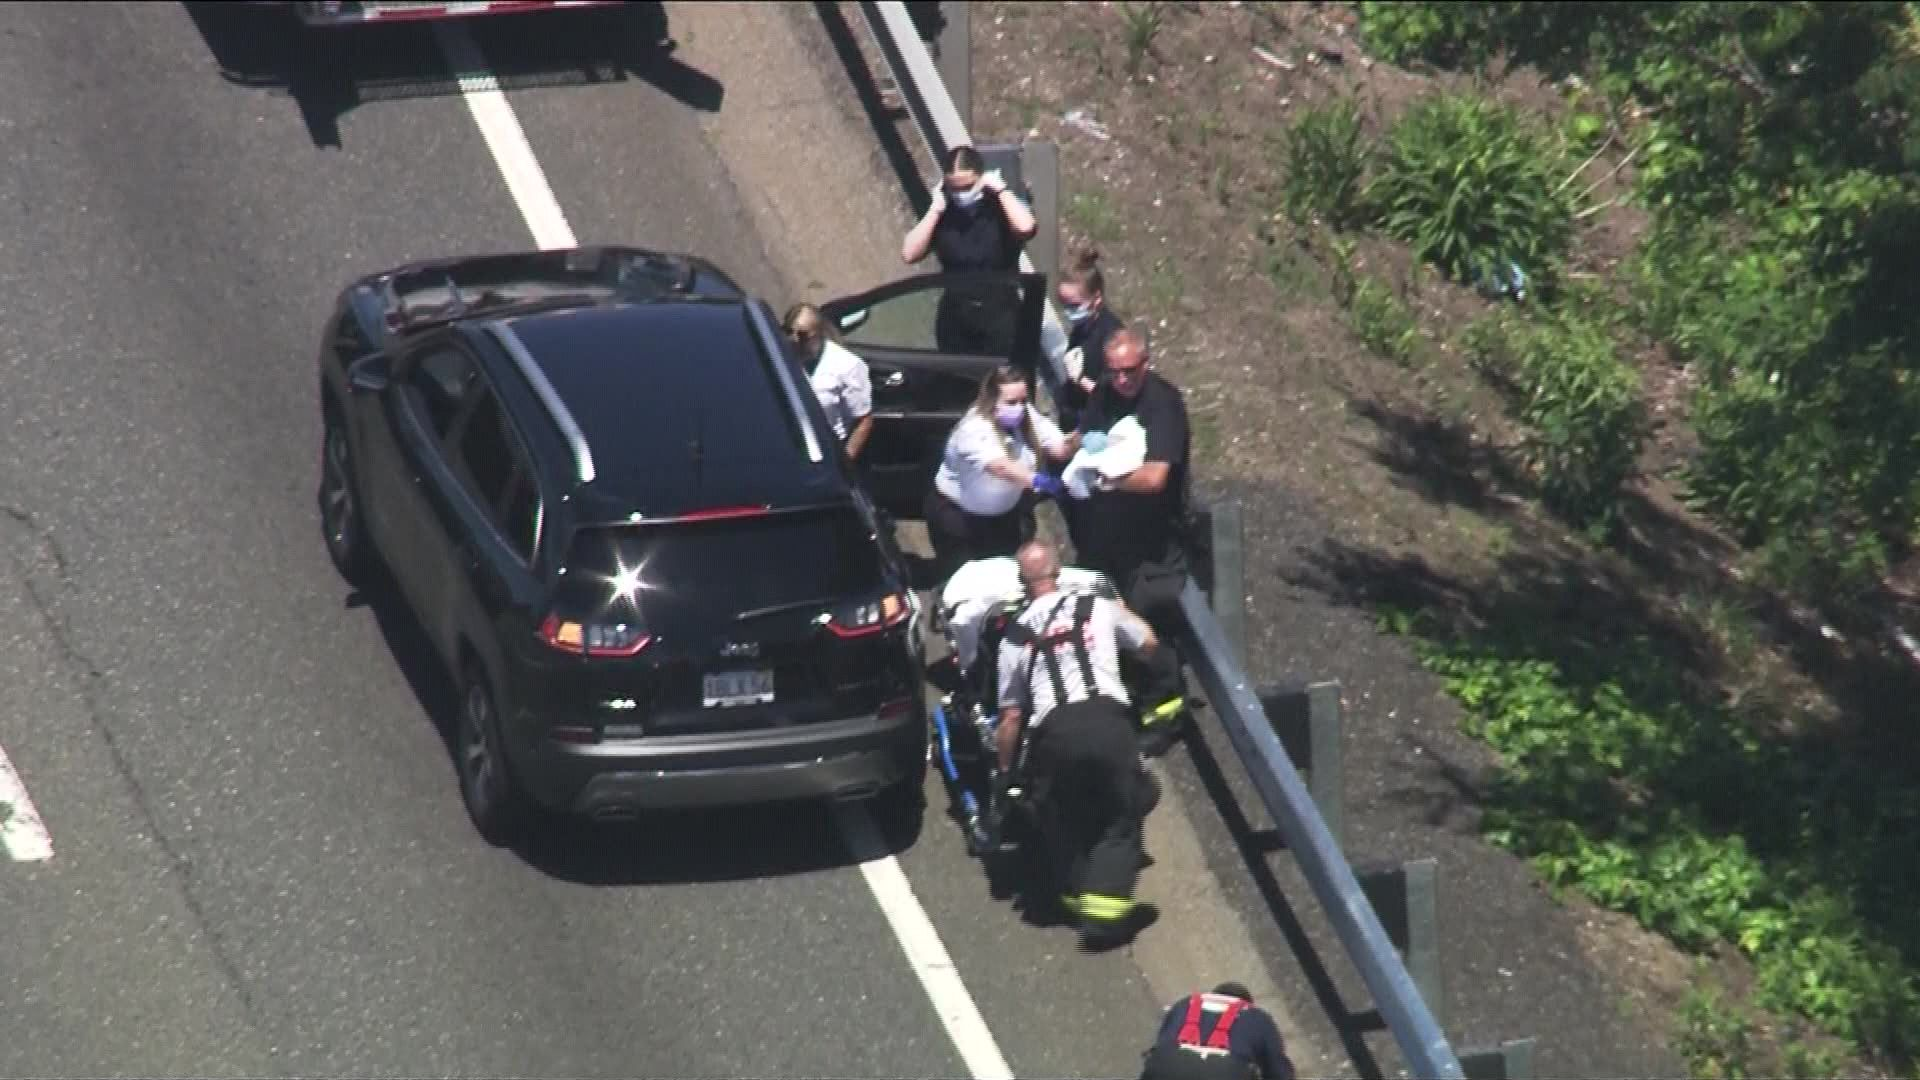 Early delivery! Dad delivers baby in SUV after getting stuck in Boston highway traffic